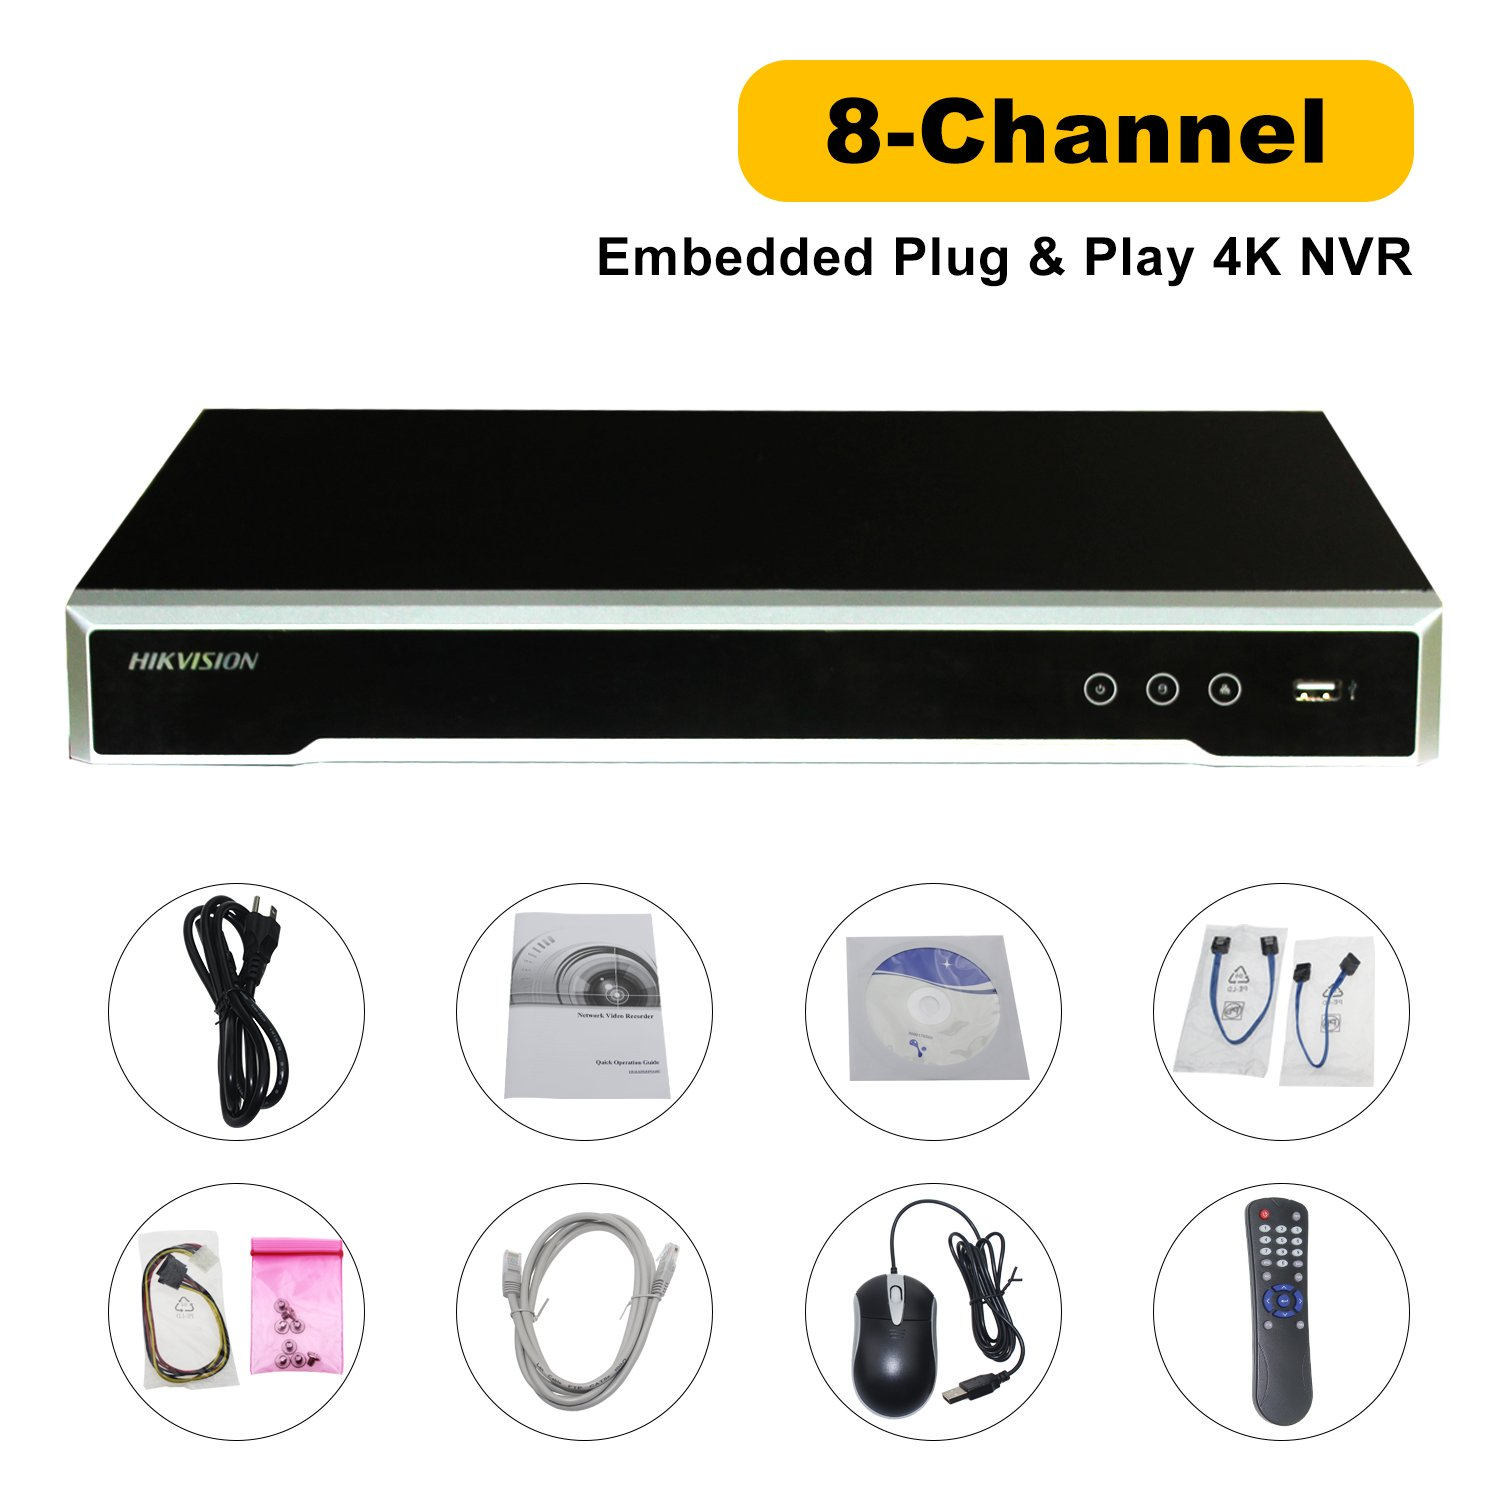 Hikvision NVR 4K POE 8 Channel Embedded Plug&Play Network Video Recorder DS-7608NI-I2/8P Support Mobile Phone Monitoring Support Upgrade